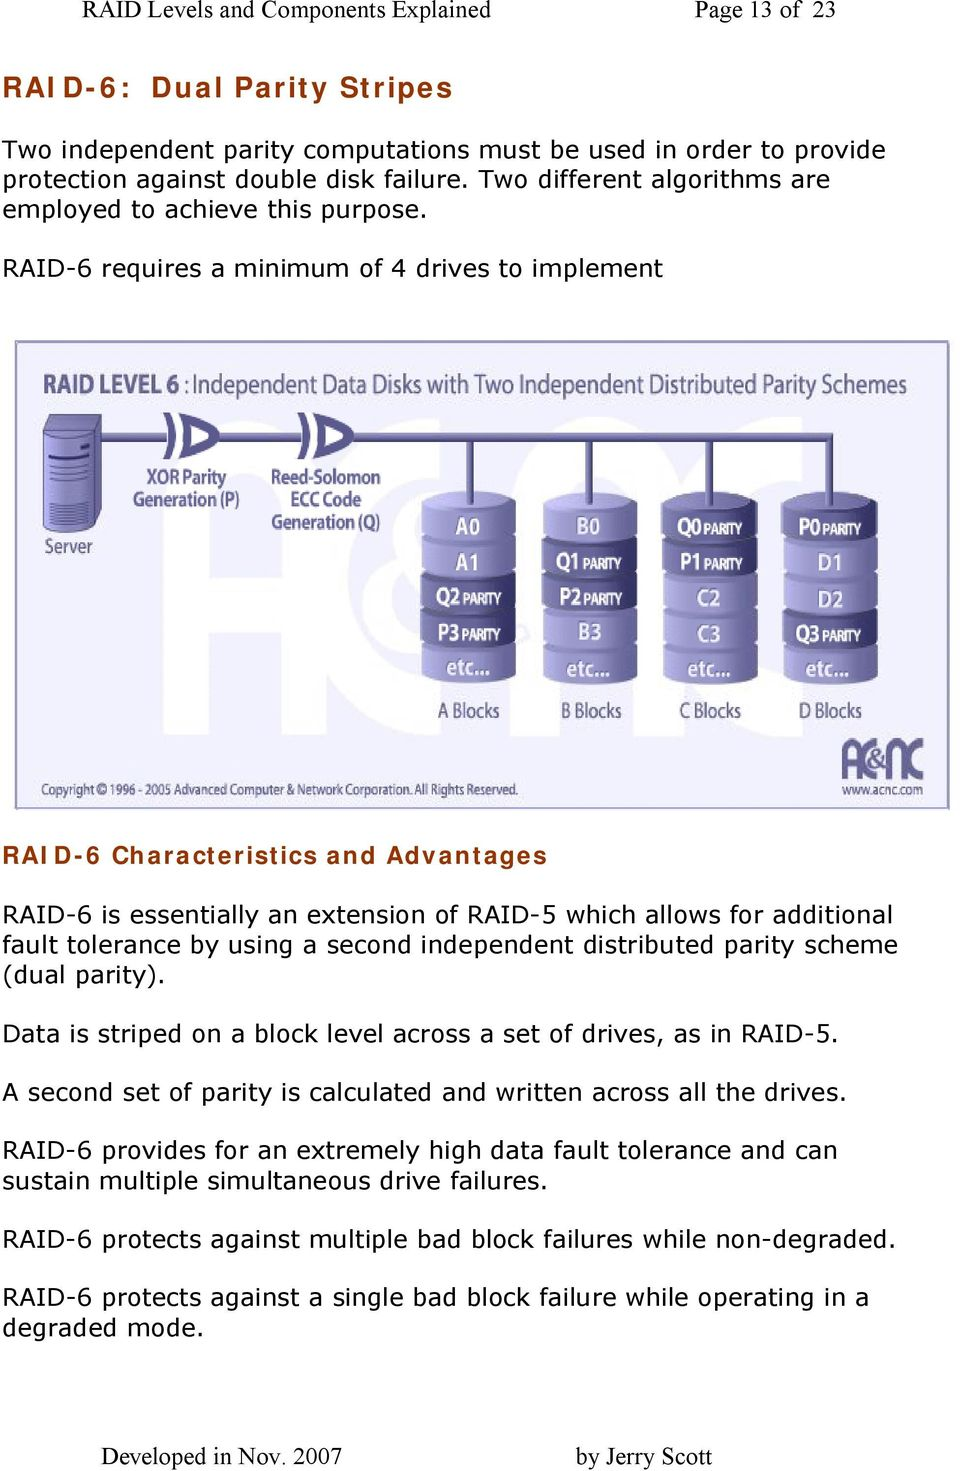 RAID-6 requires a minimum of 4 drives to implement RAID-6 Characteristics and Advantages RAID-6 is essentially an extension of RAID-5 which allows for additional fault tolerance by using a second